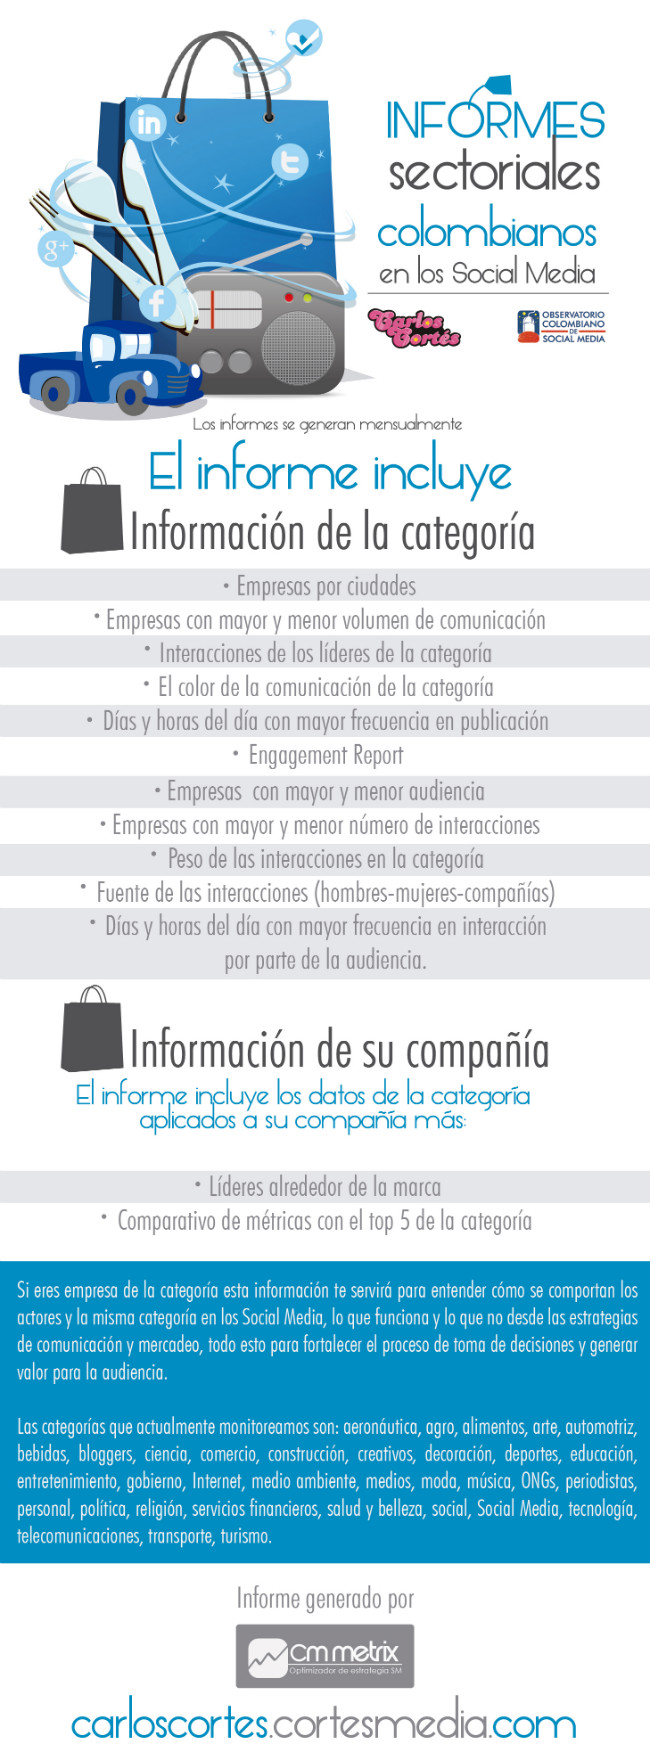 informes-sectoriales-social-media-colombia-1